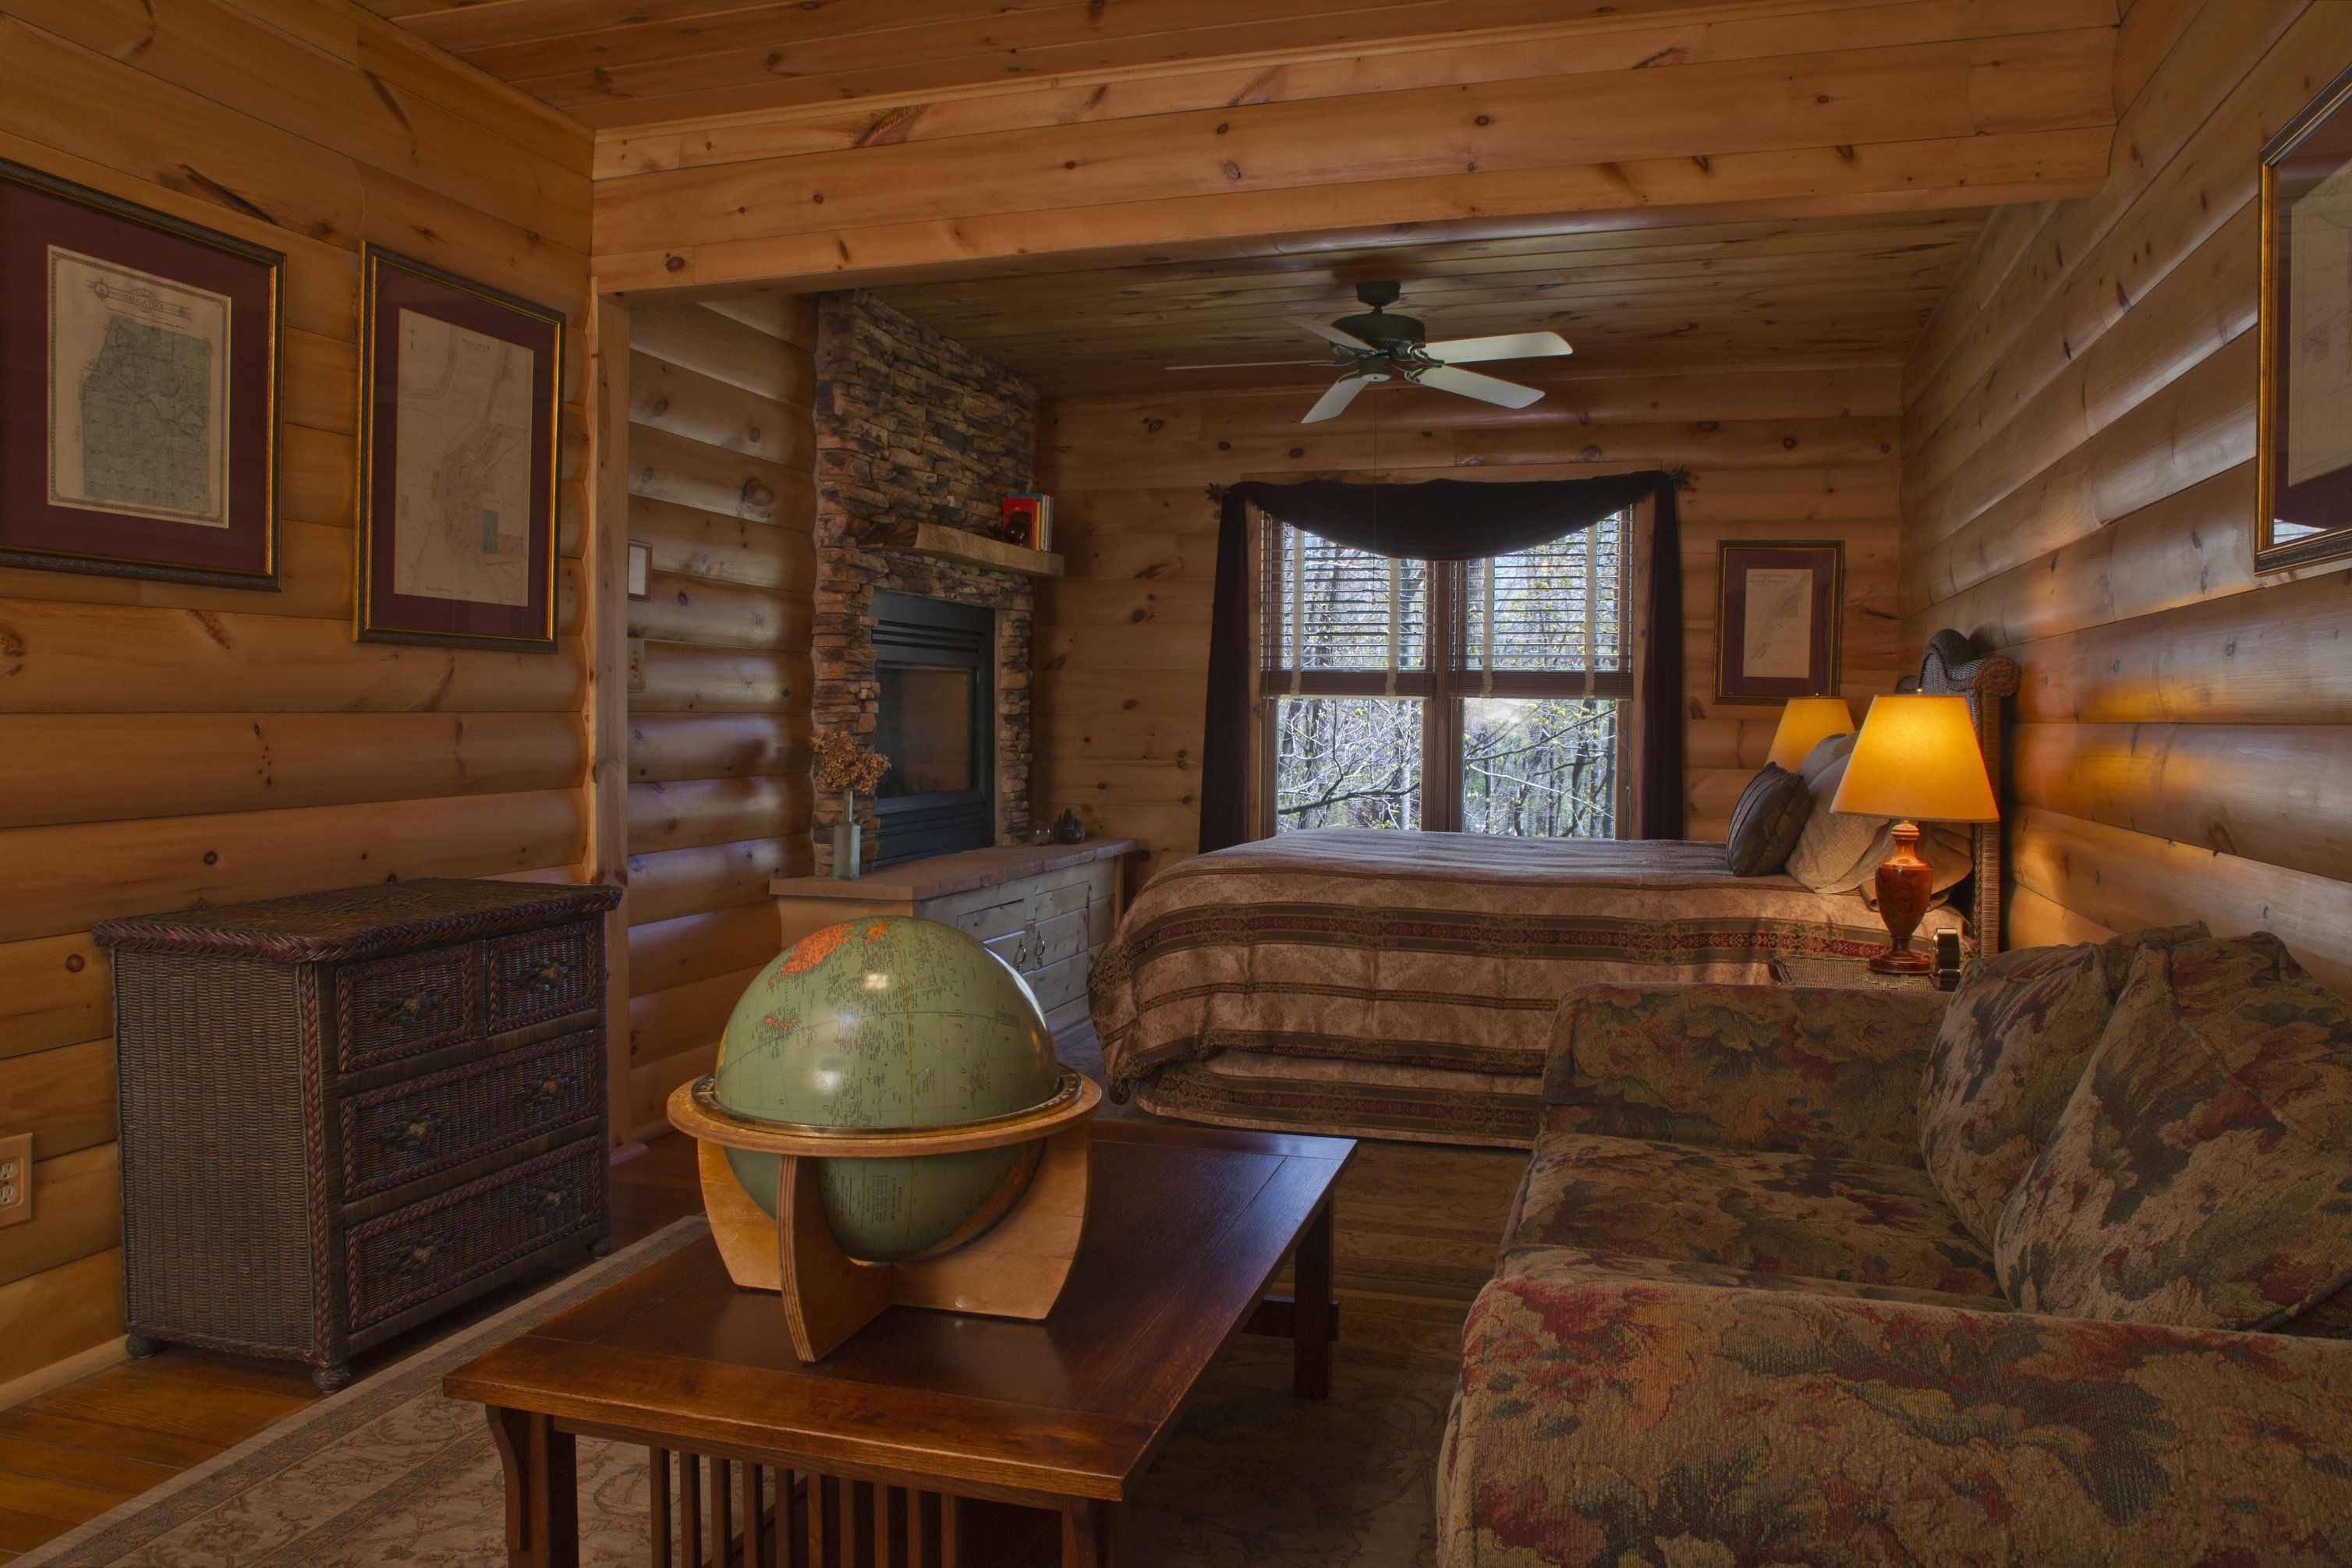 Sherwood Forest Bed And Breakfast, Log Cabin Suite